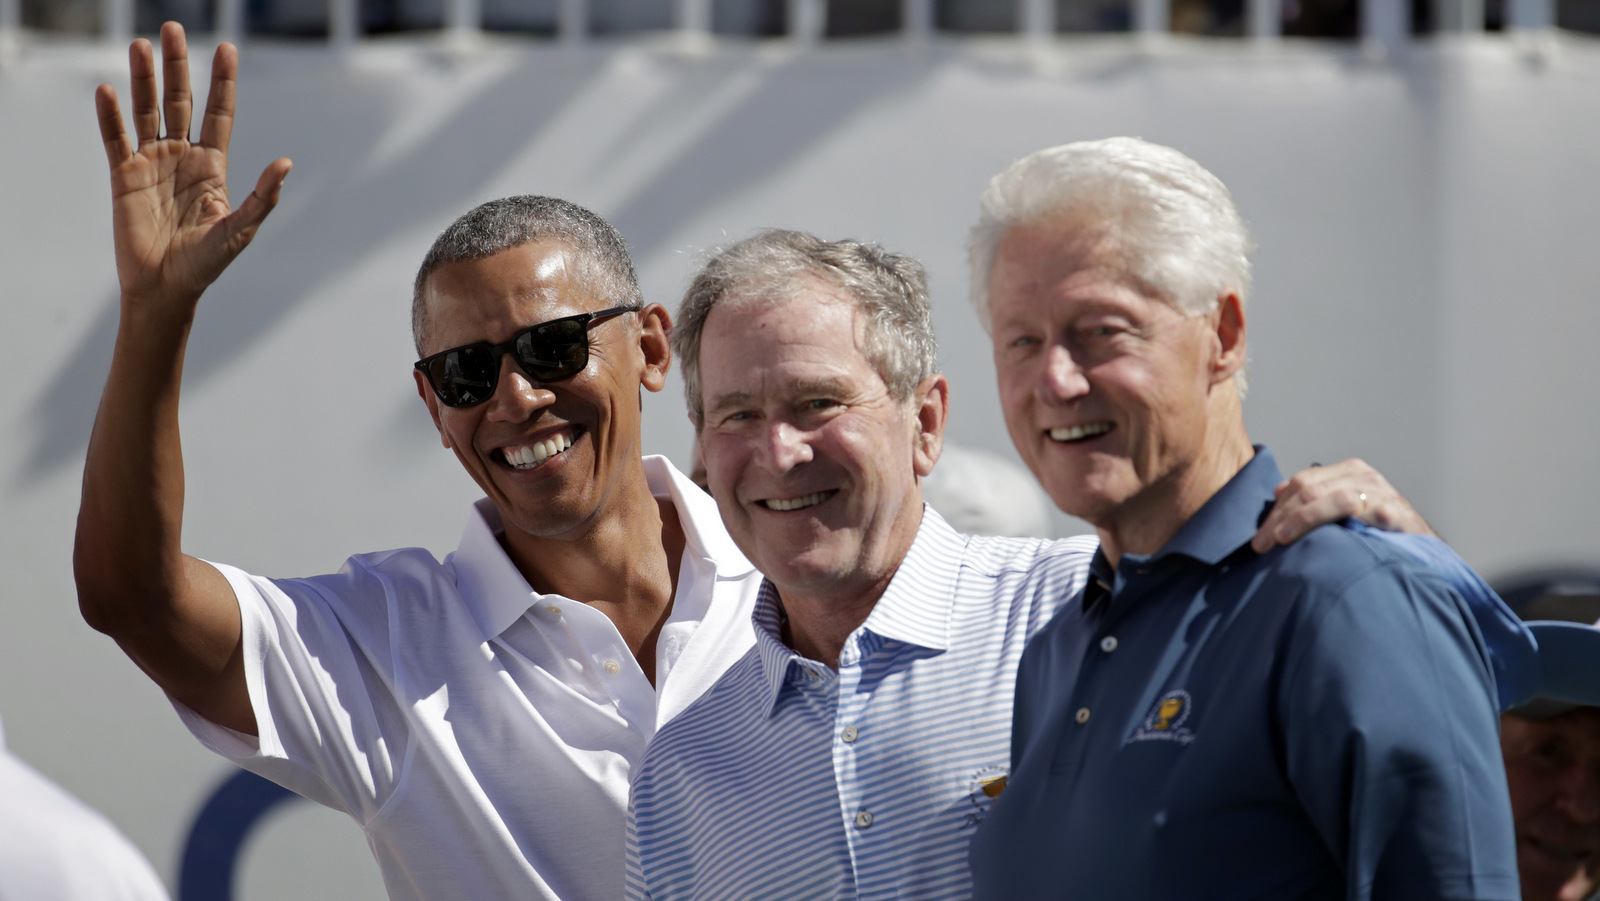 Former U.S. Presidents, from left, Barack Obama, George Bush and Bill Clinton greet spectators on the first tee before the first round of the Presidents Cup at Liberty National Golf Club in Jersey City, N.J., Sept. 28, 2017. (AP/Julio Cortez)